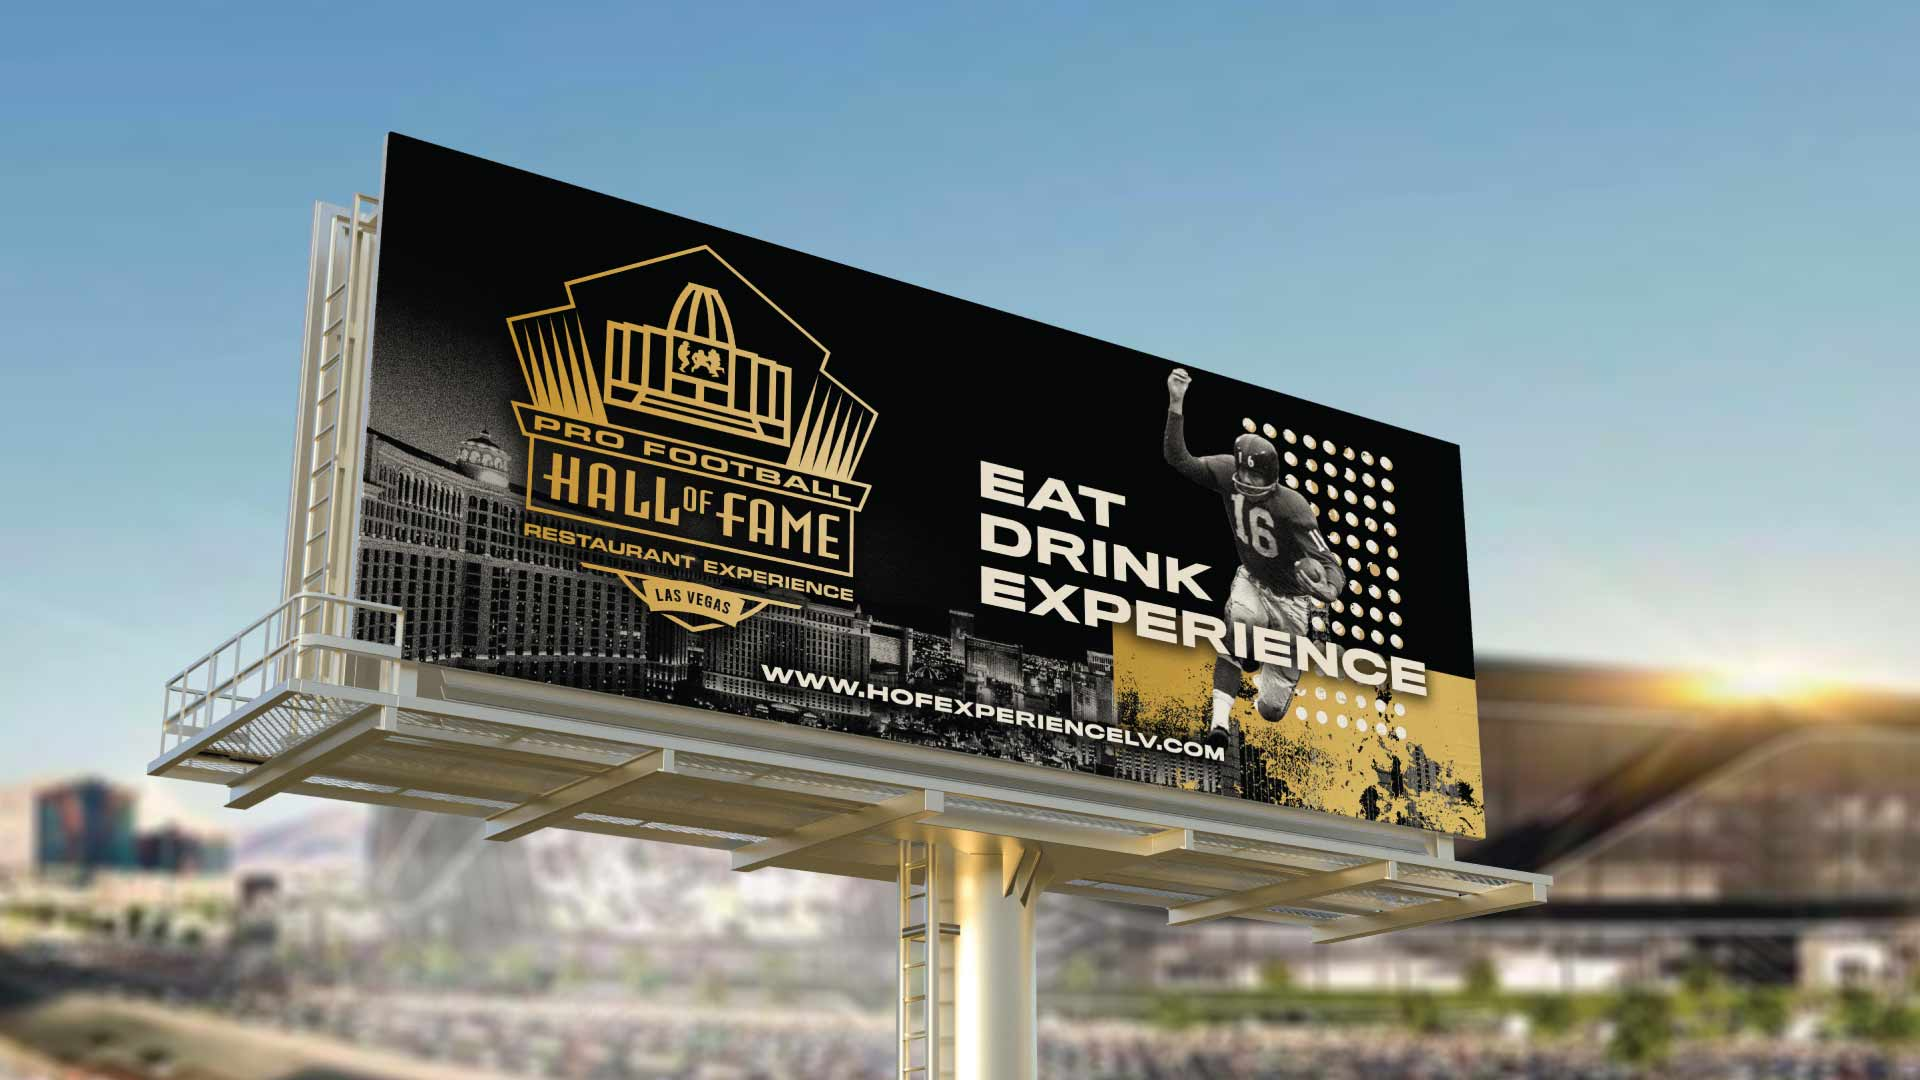 pro-football-hall-of-fame-restaurant-experience-billboard